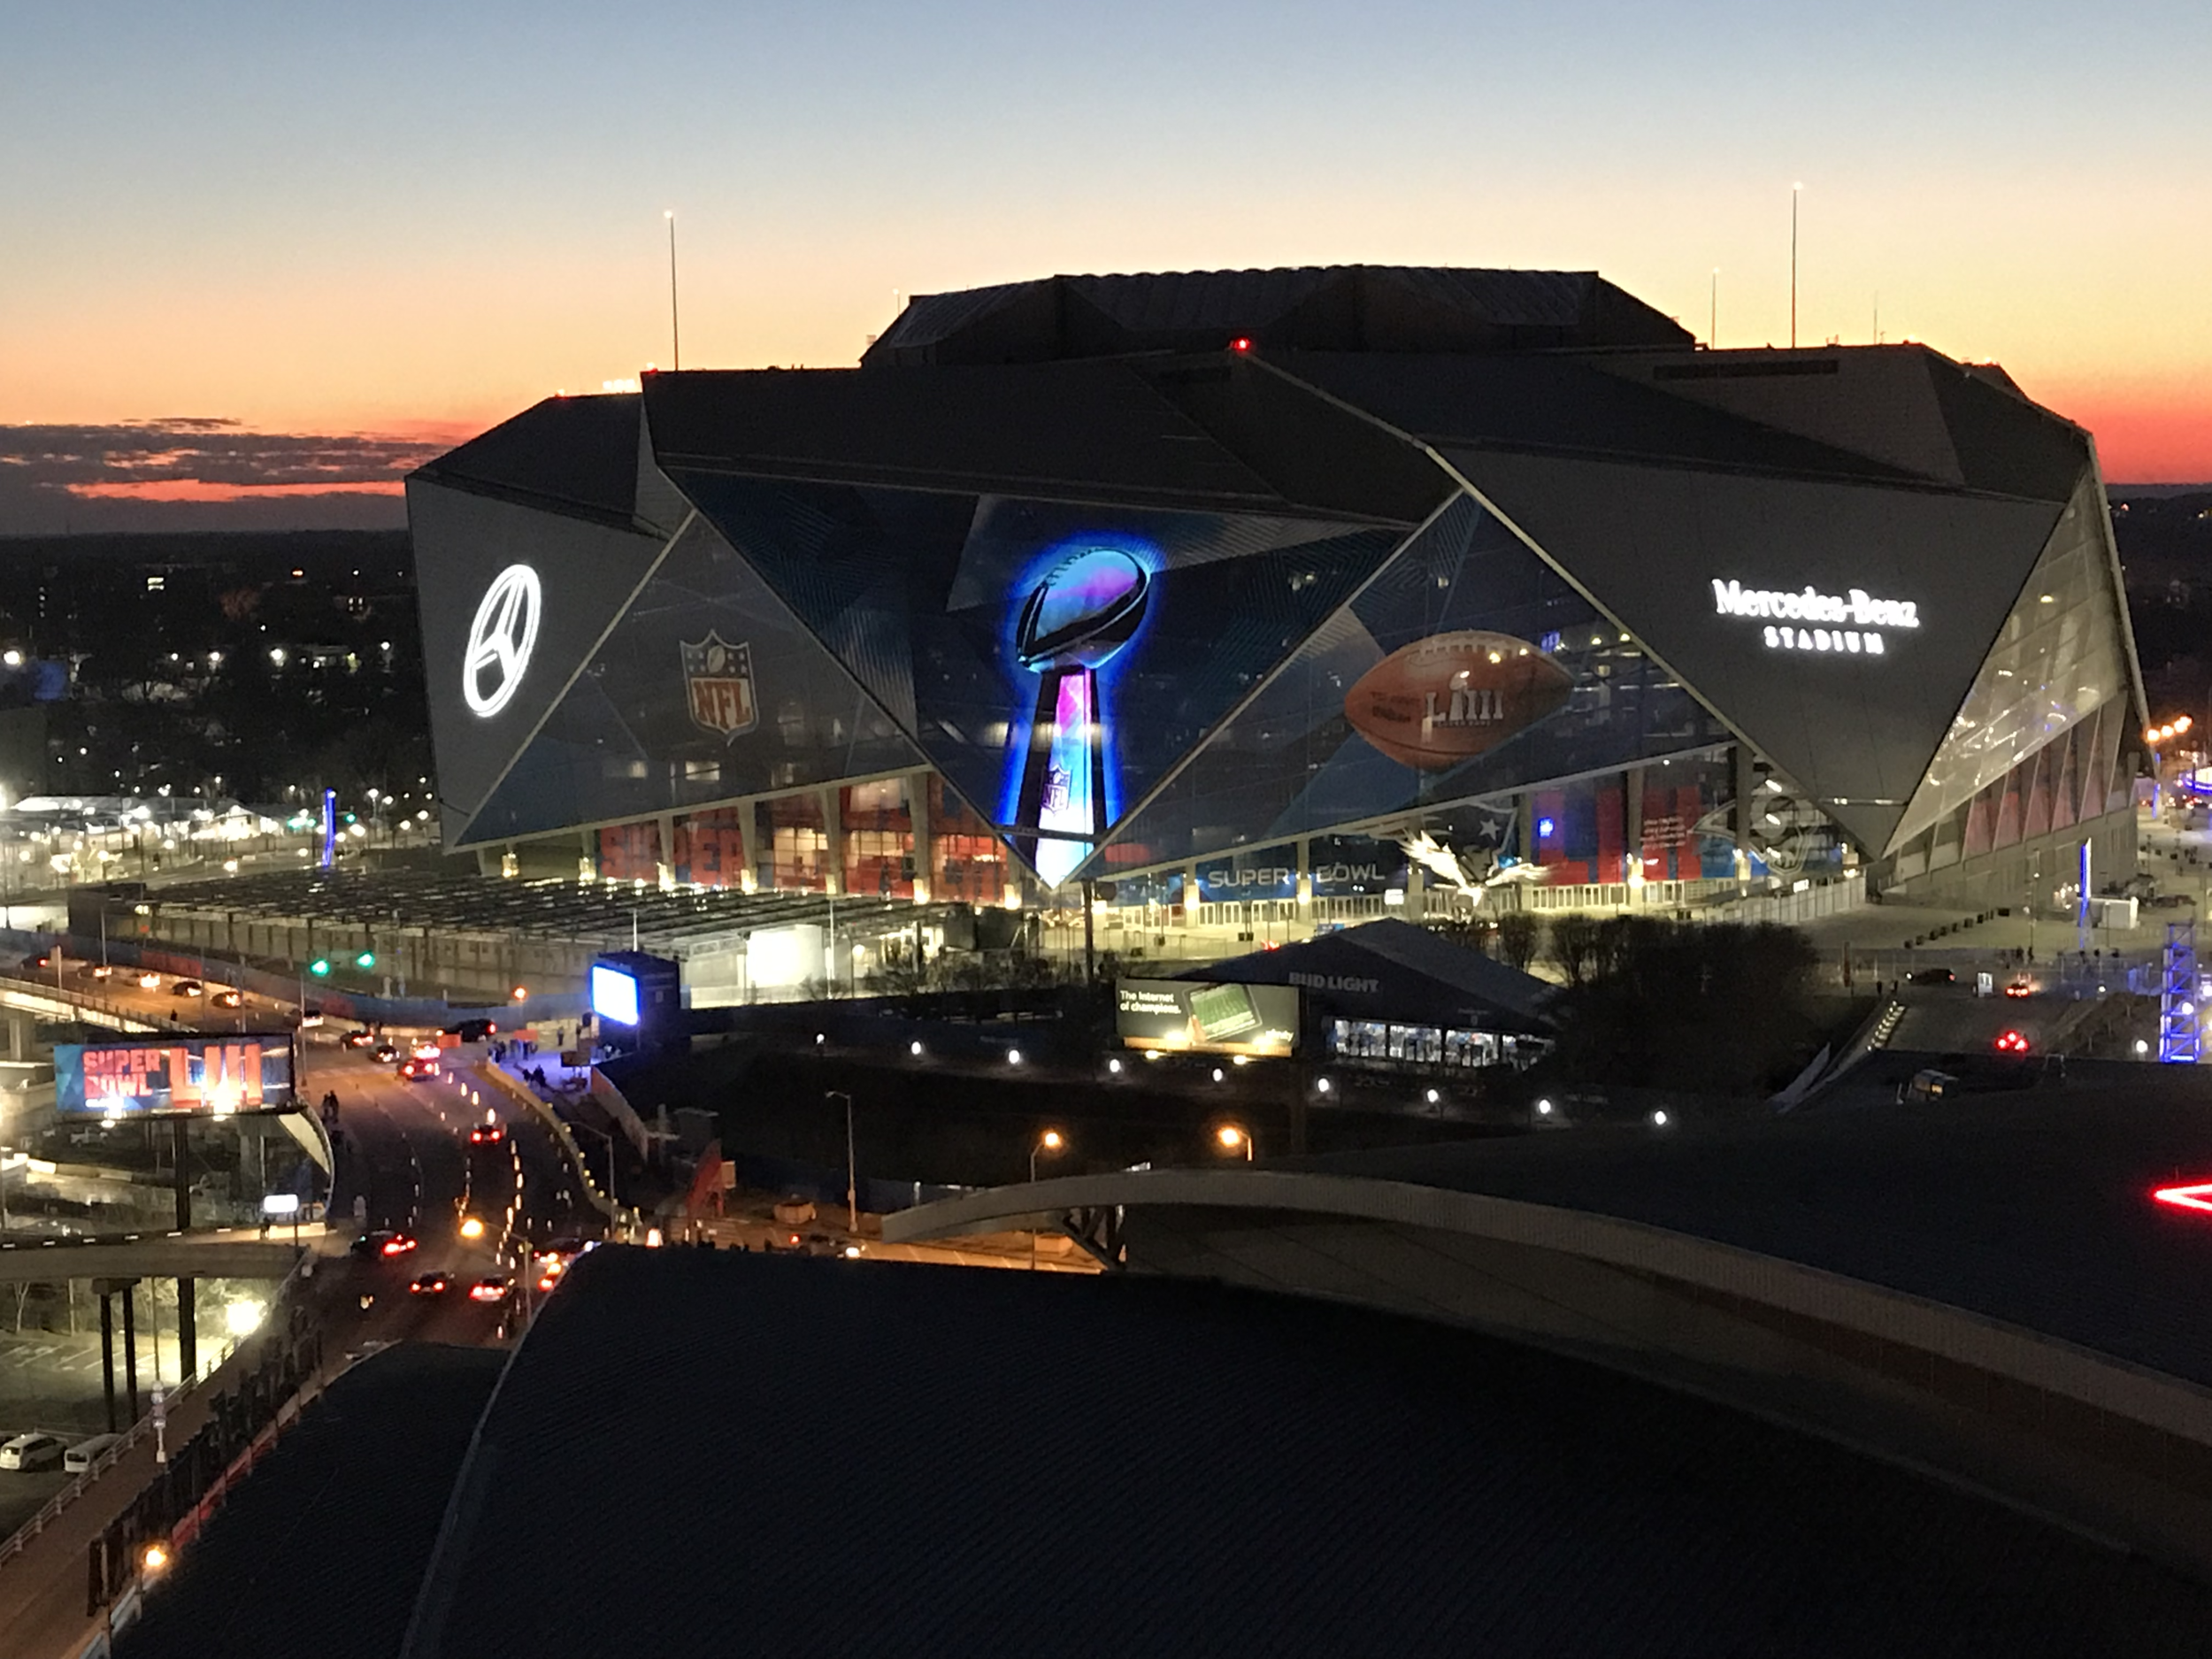 Mercedes-Benz Stadium at sunset, night of Super Bowl LIII.